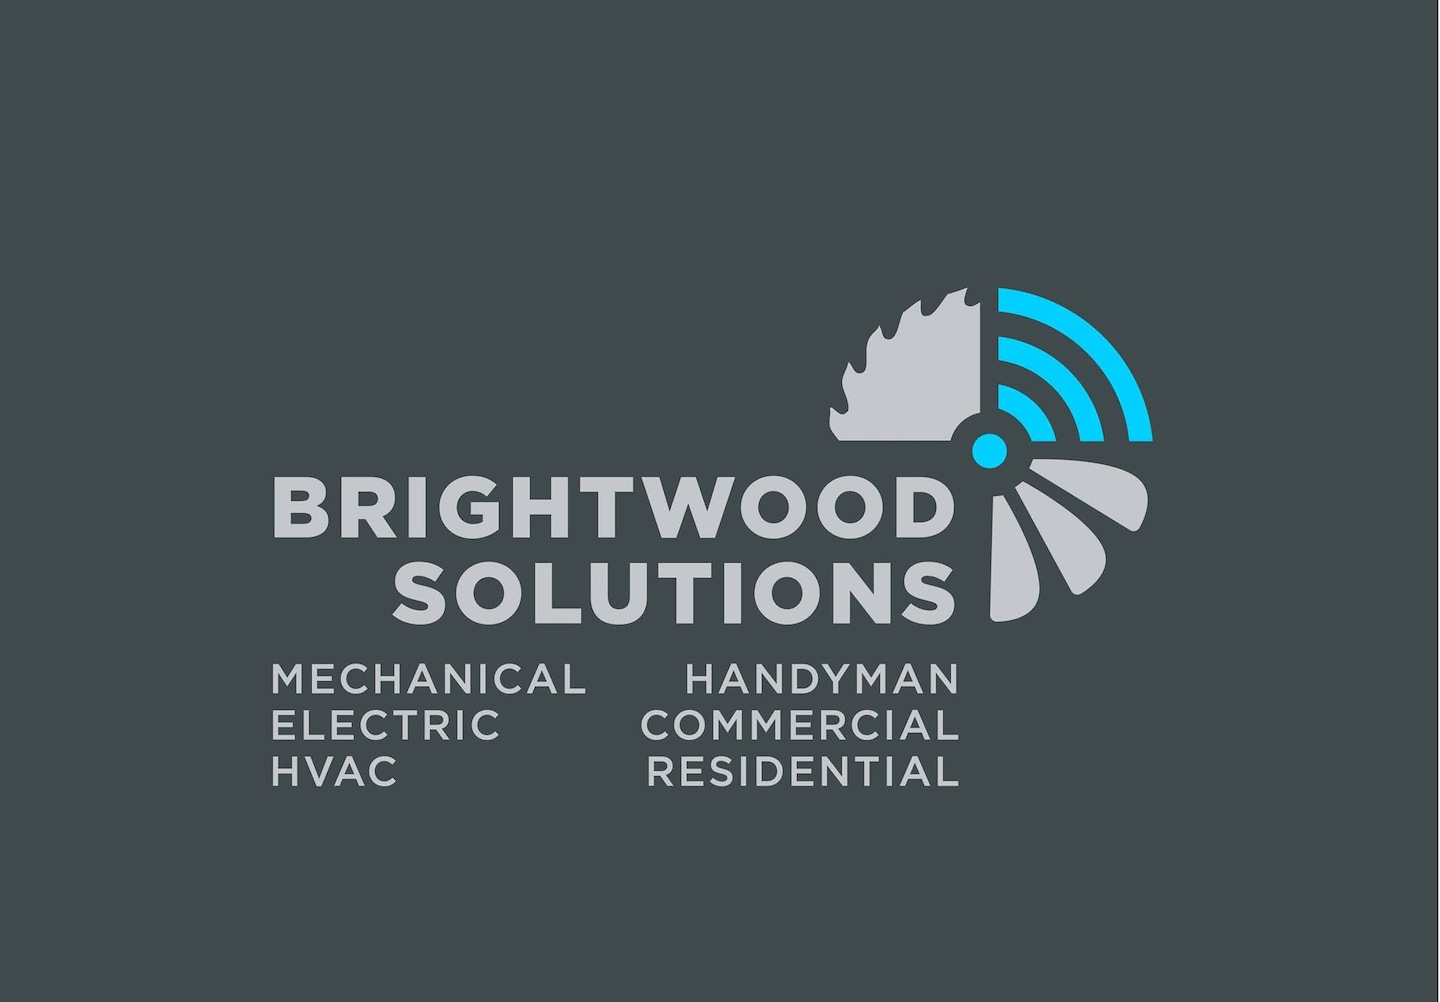 Brightwood Solutions